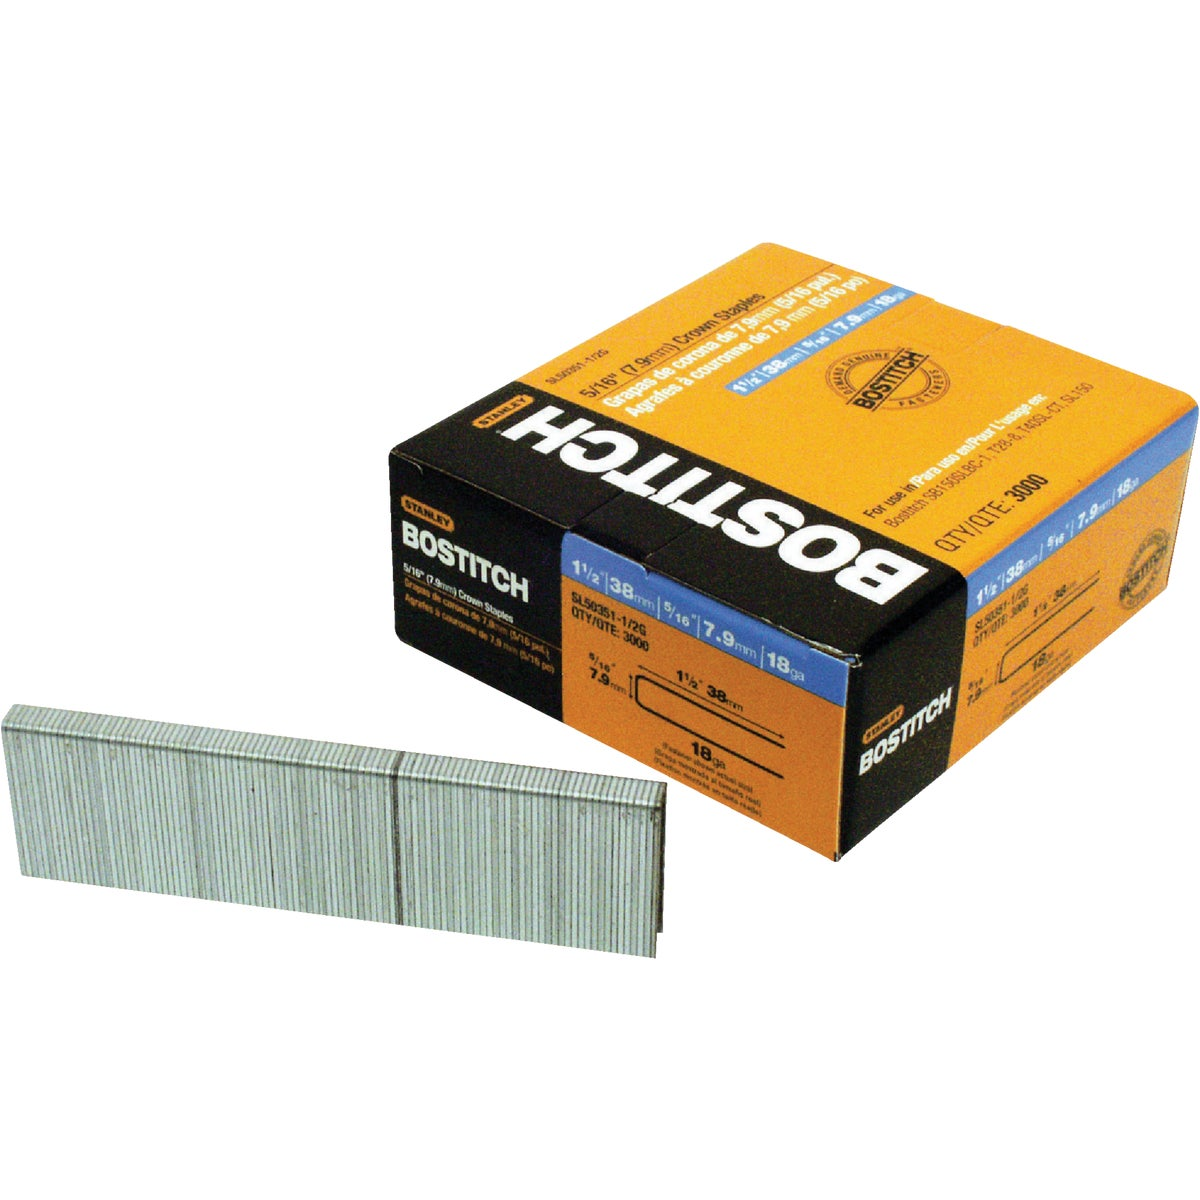 "1-1/2"" STAPLE - SL50351-1/2G by Stanley Bostitch"